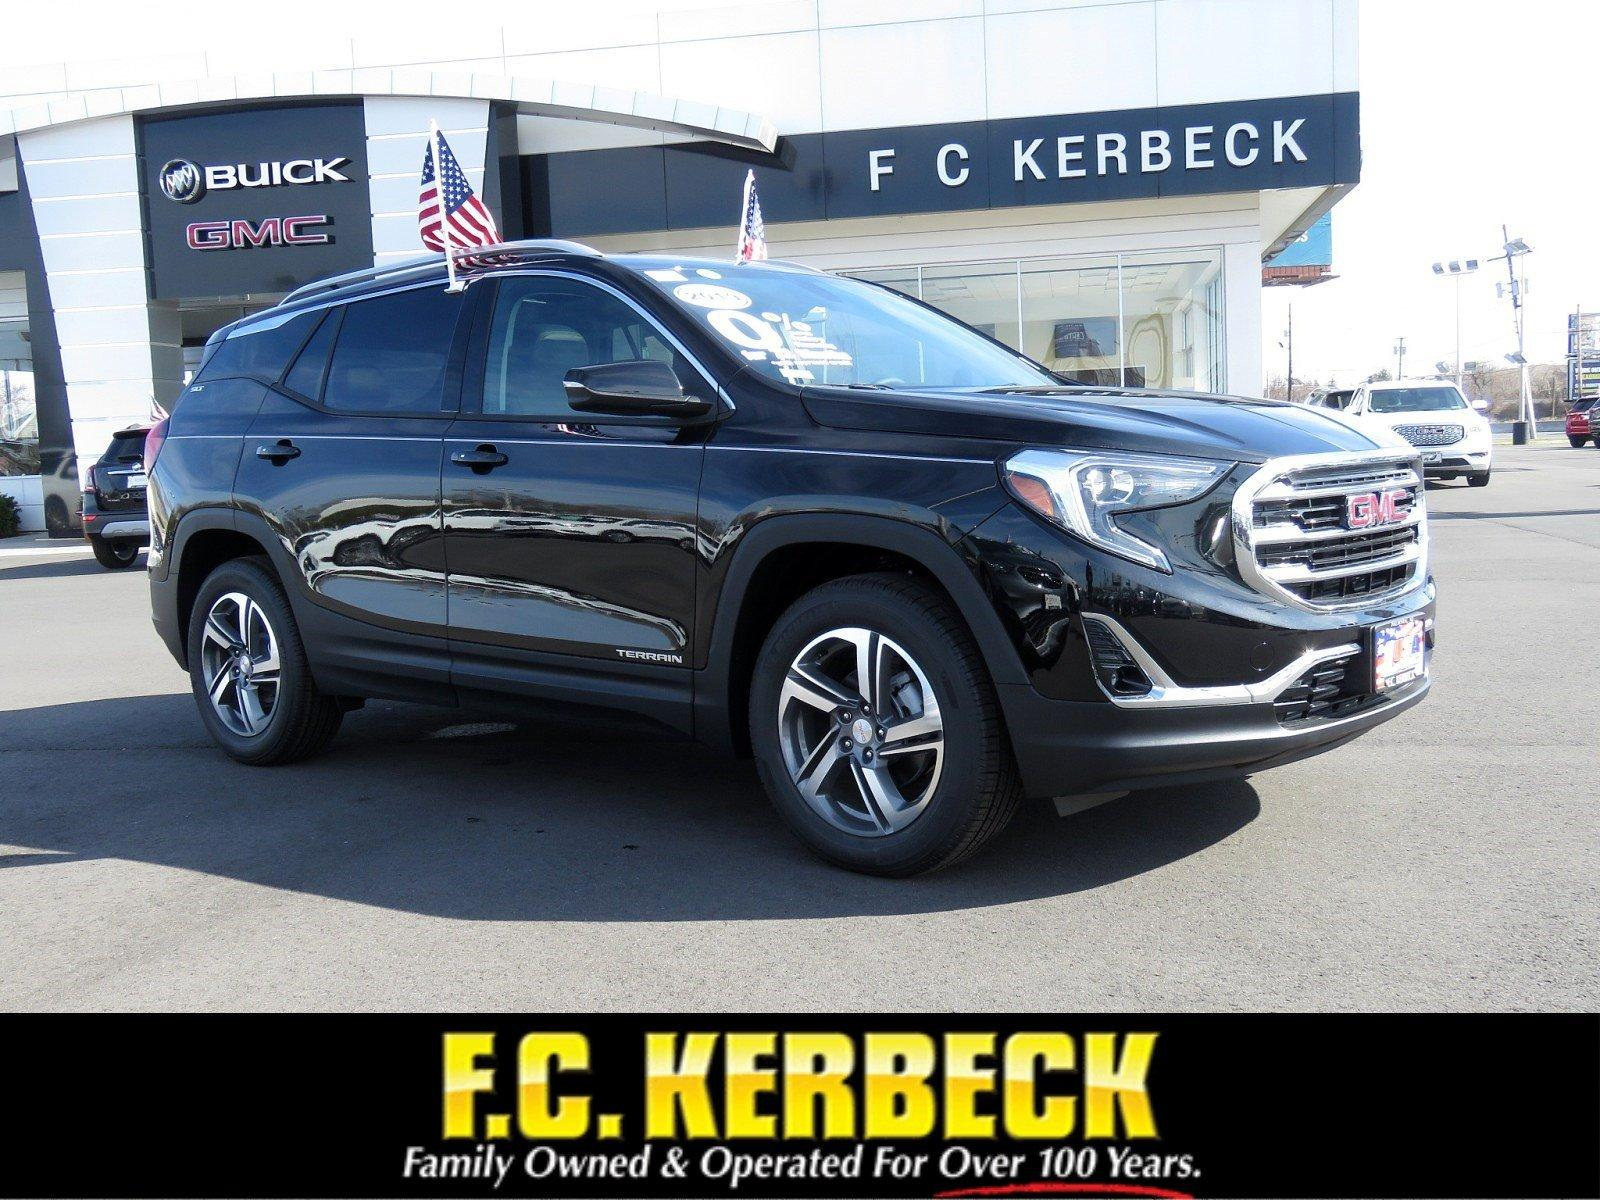 New 2019 GMC Terrain SLT for sale $38,660 at F.C. Kerbeck Bentley Palmyra N.J. in Palmyra NJ 08065 1